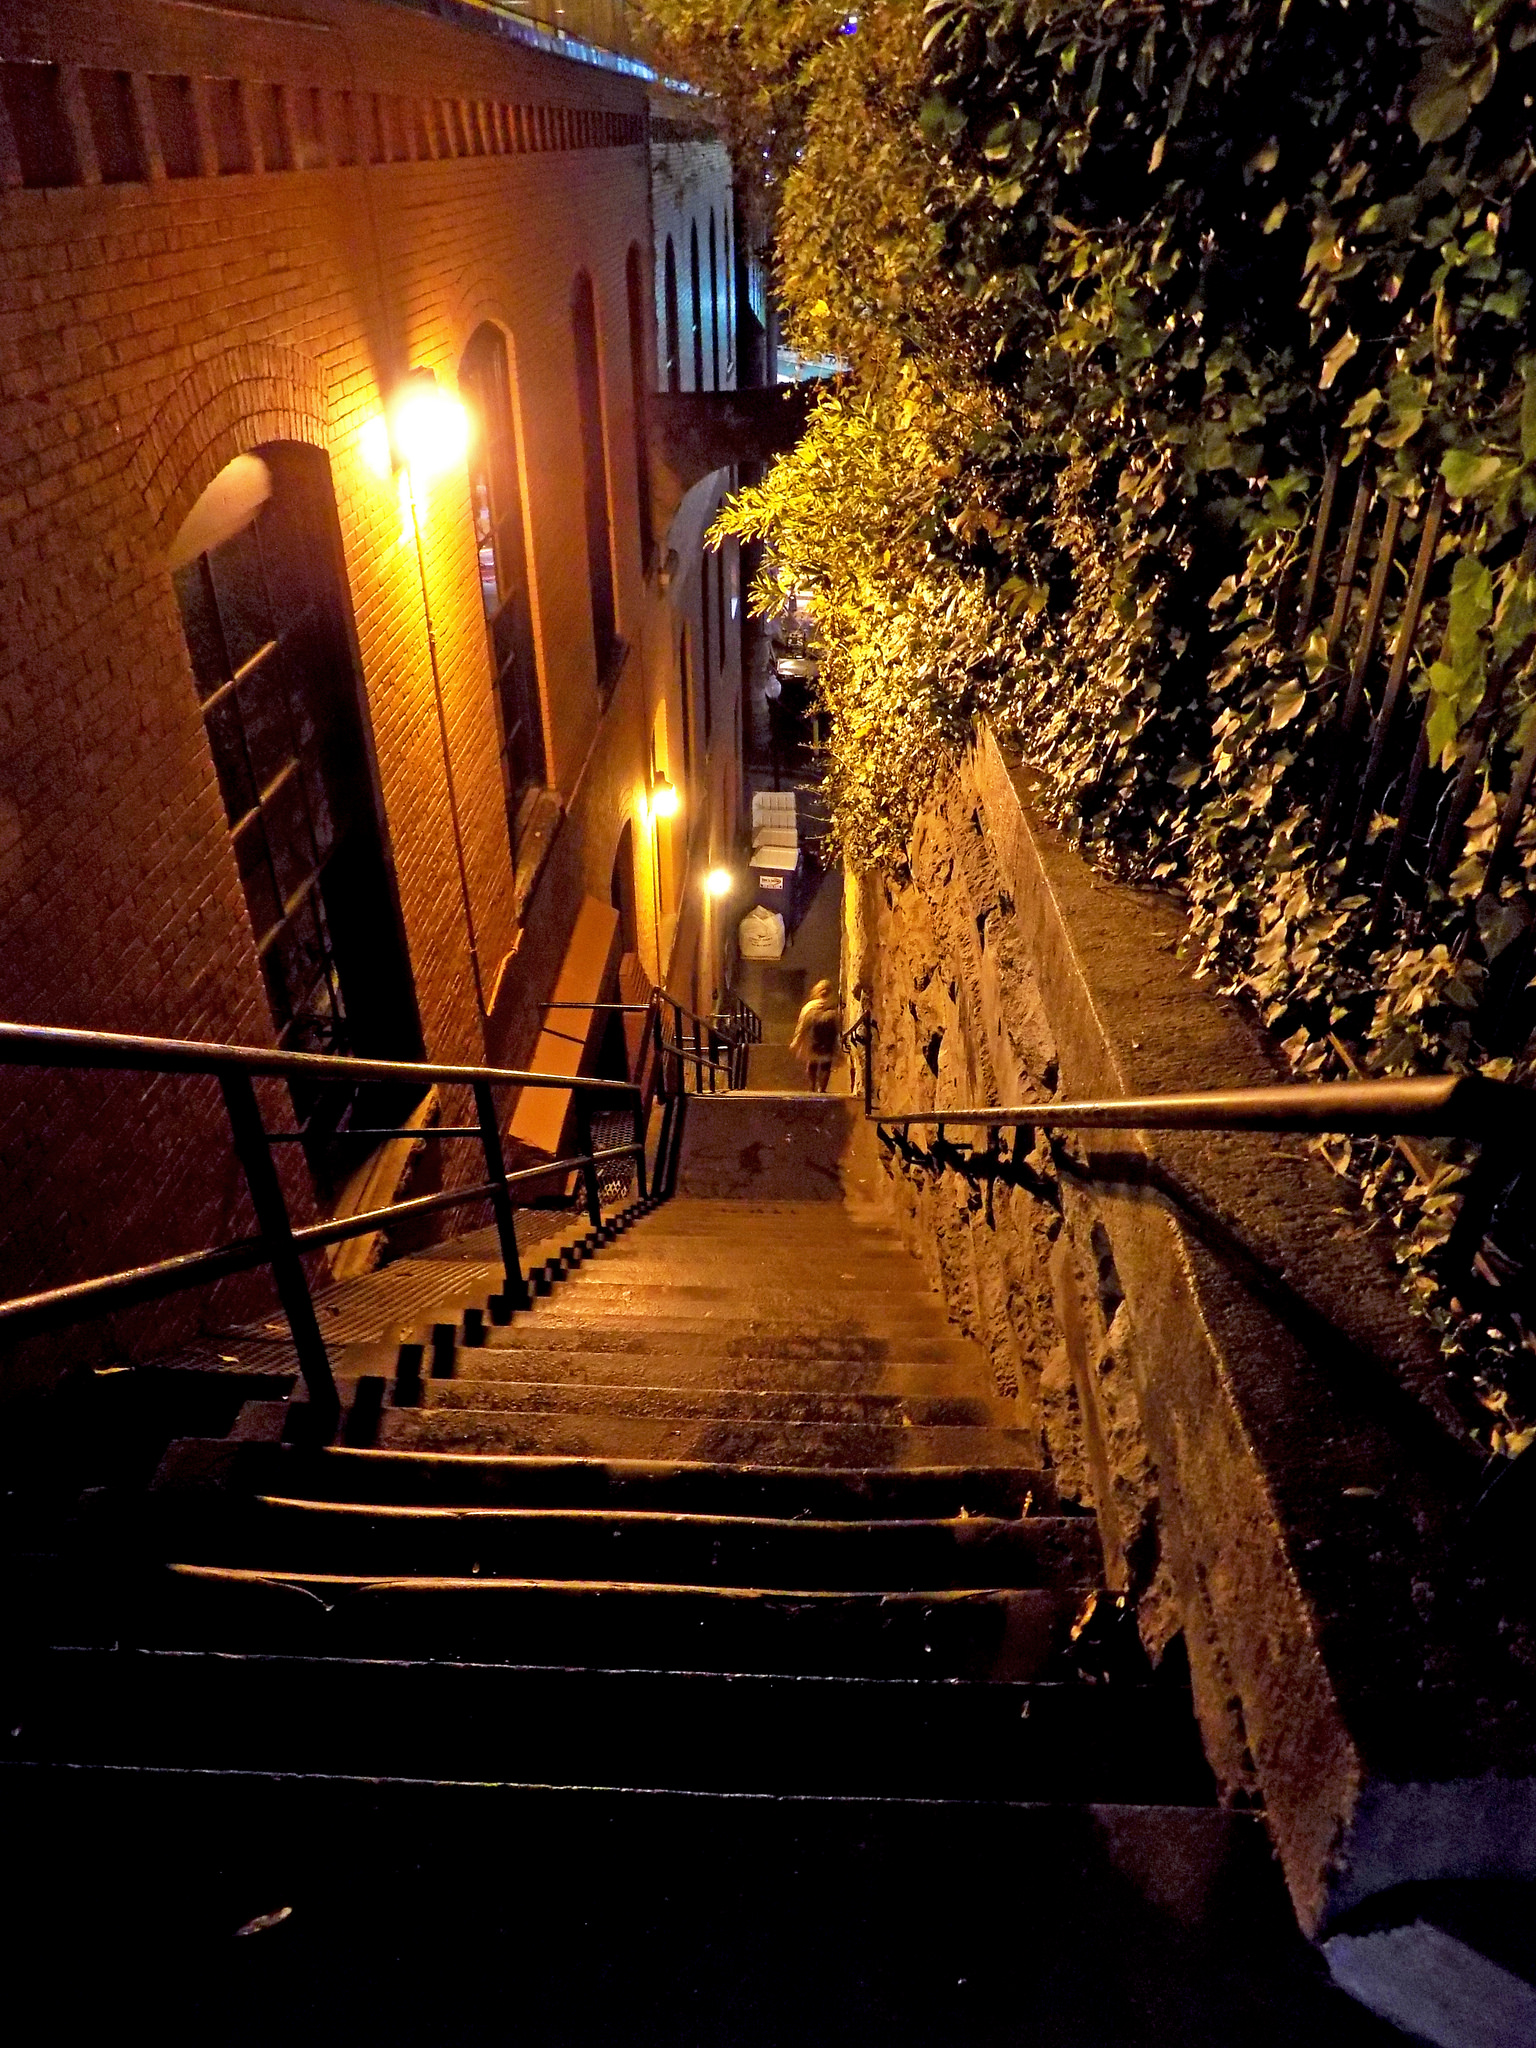 The Exorcist Steps DCs Most Frightfully Famous Staircase